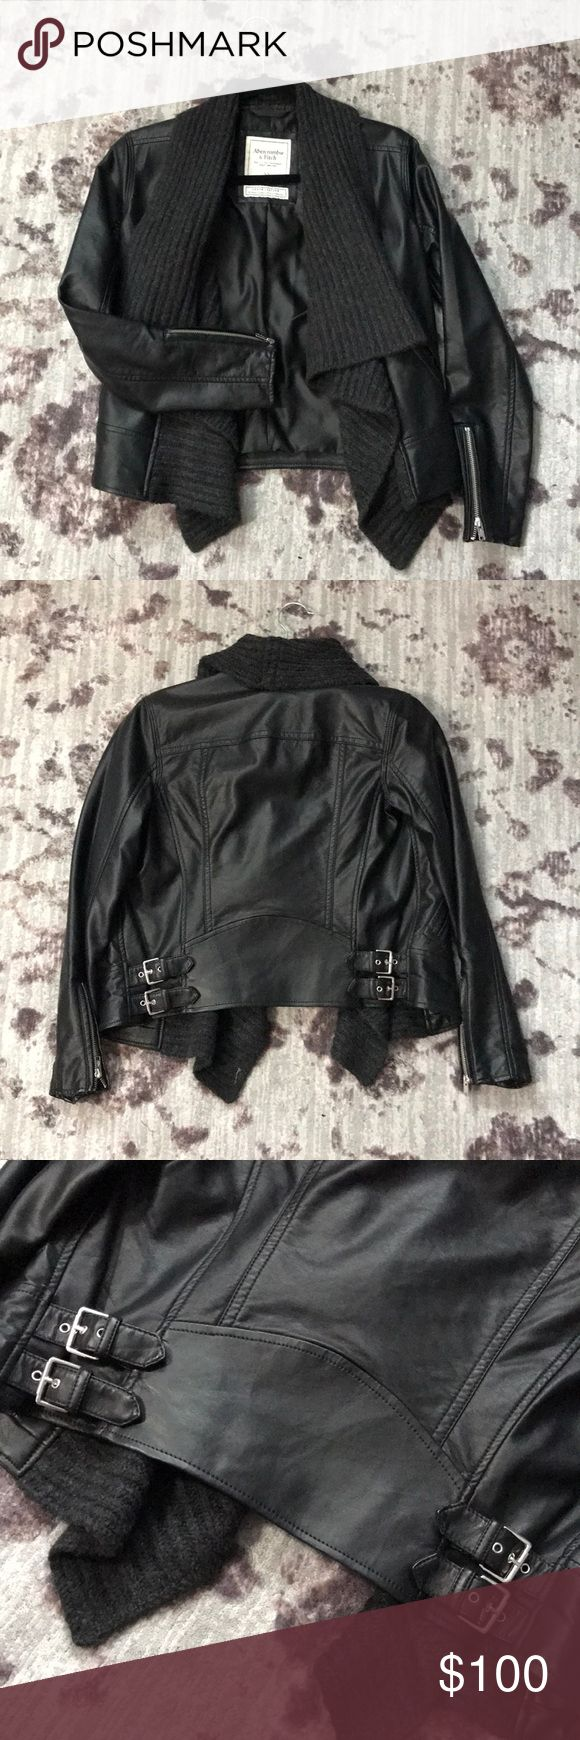 Abercrombie and Fitch leather jacket Abercrombie and Fitch leather jacket  •vegan leather  •only worn twice •like new  •black  •knit Abercrombie & Fitch Jackets & Coats